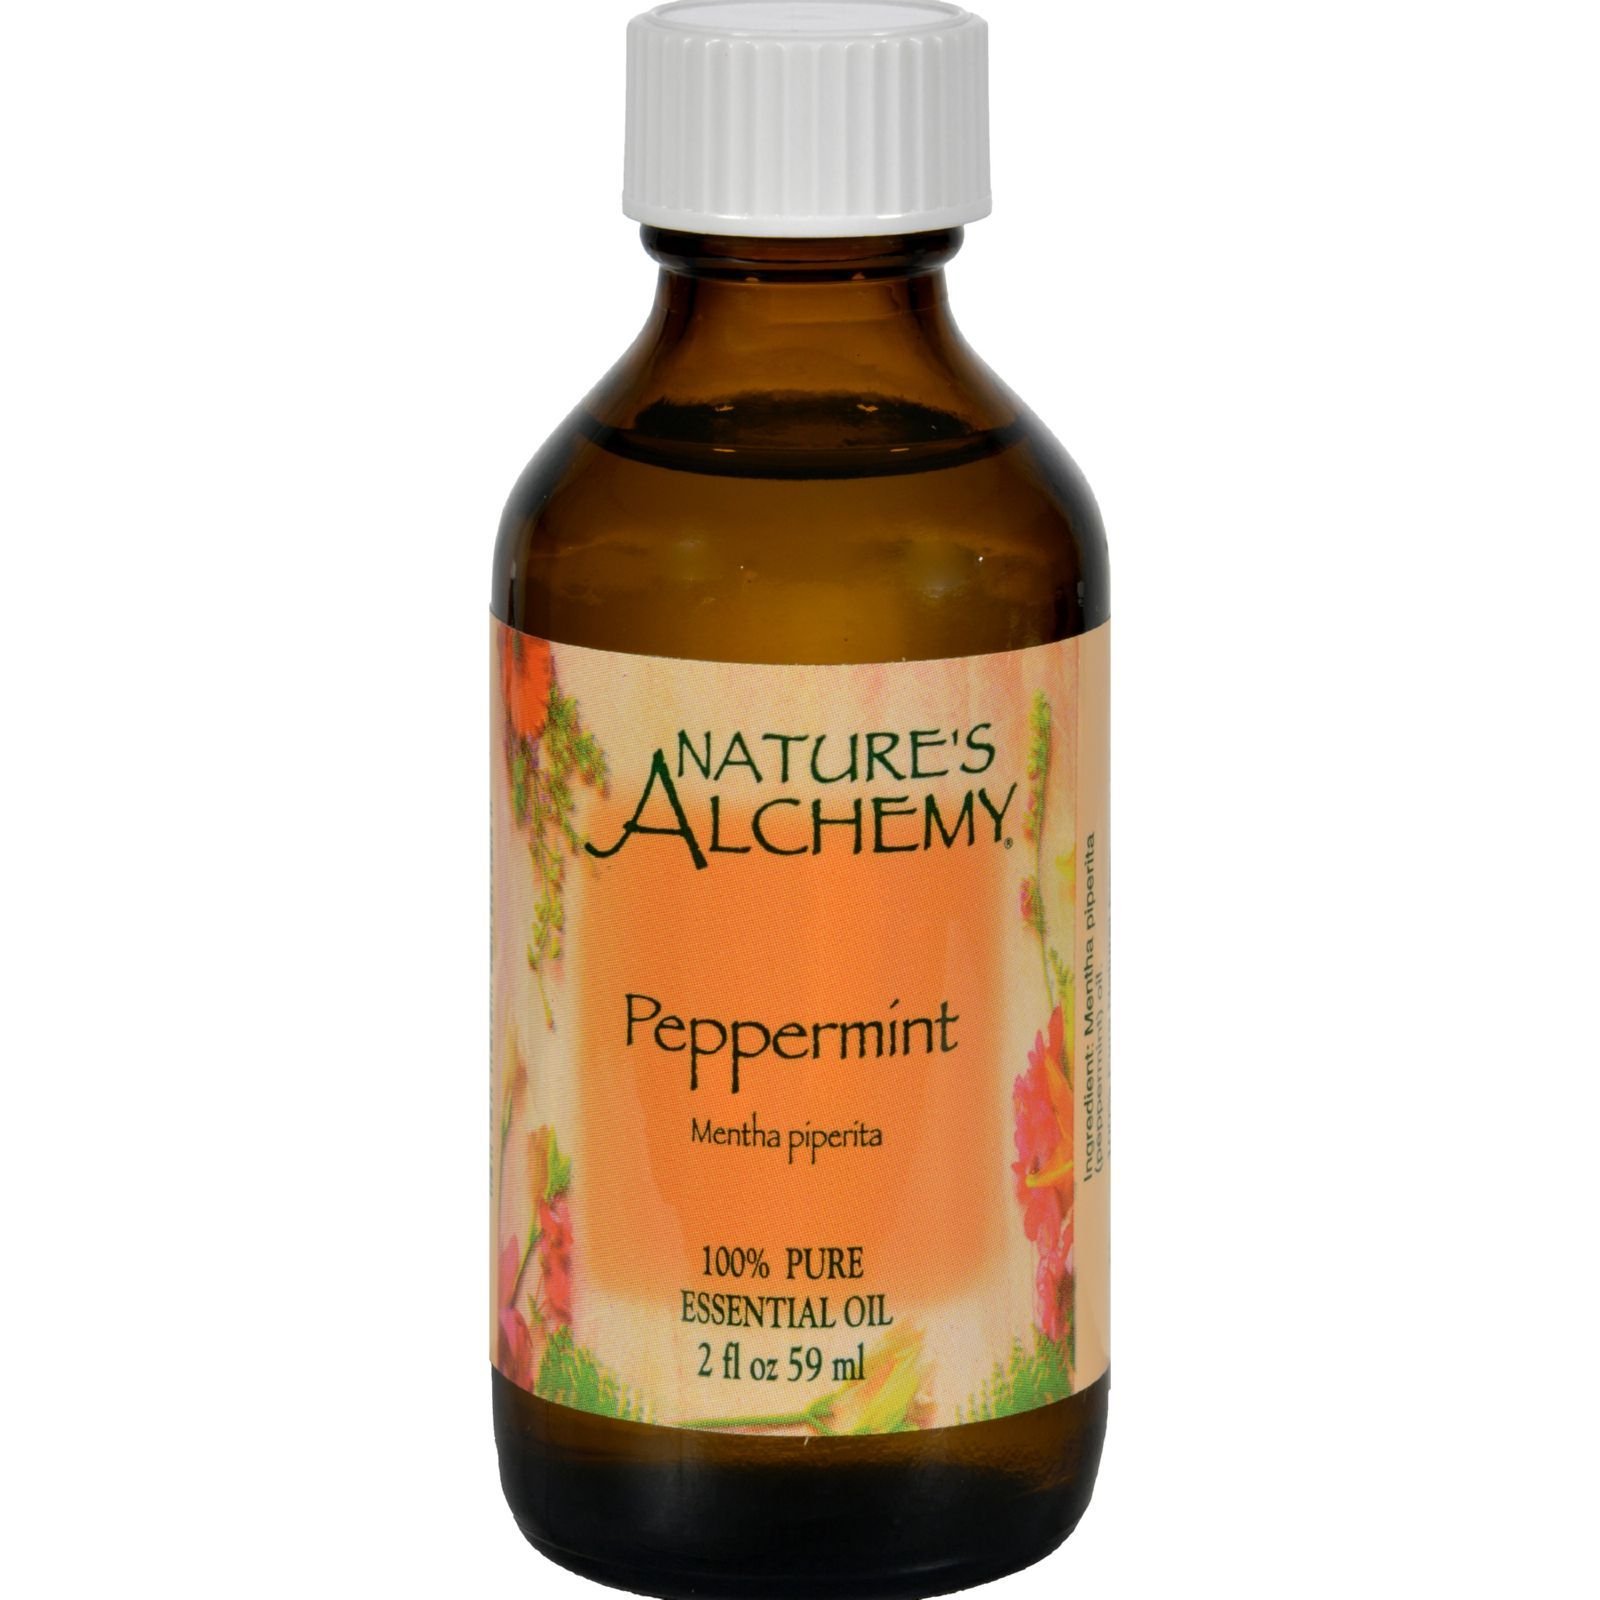 Nature's Alchemy 100% Pure Essential Oil Peppermint - 2 Fl Oz - BeeGreen